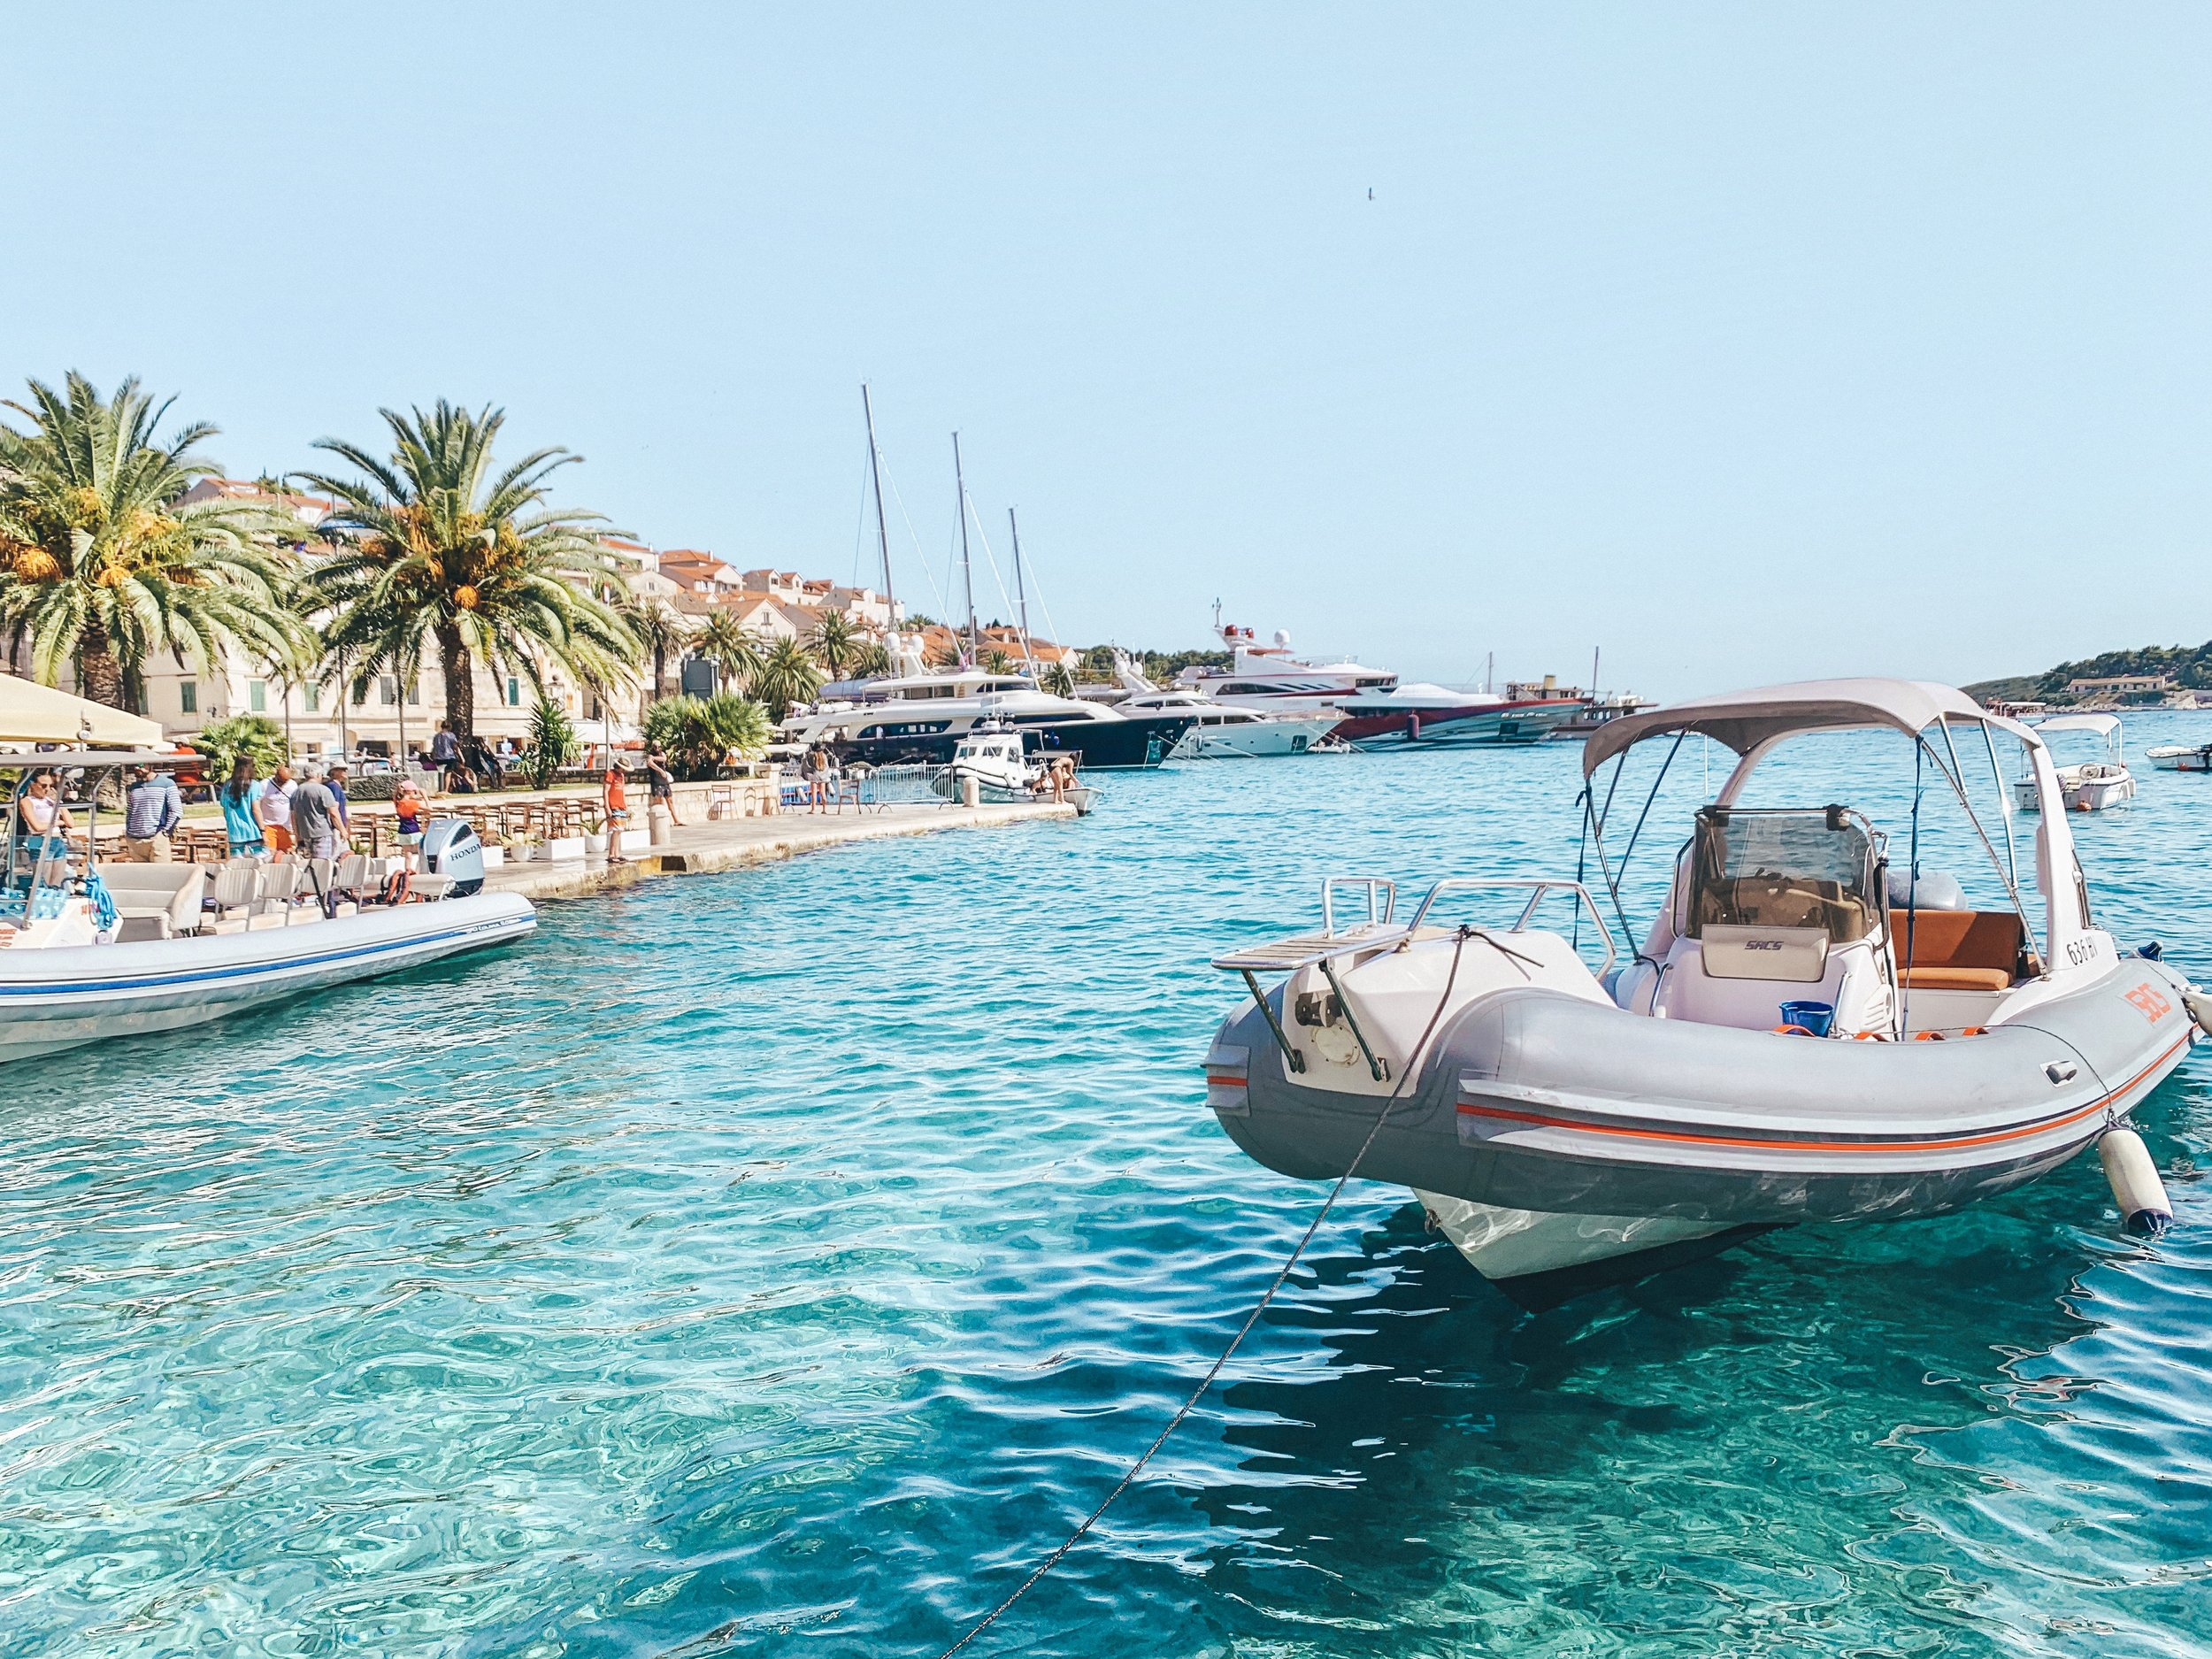 Clear turquoise waters matched only by equally beautiful villages, makes Hvar one of those places you can't miss while visiting Croatia.